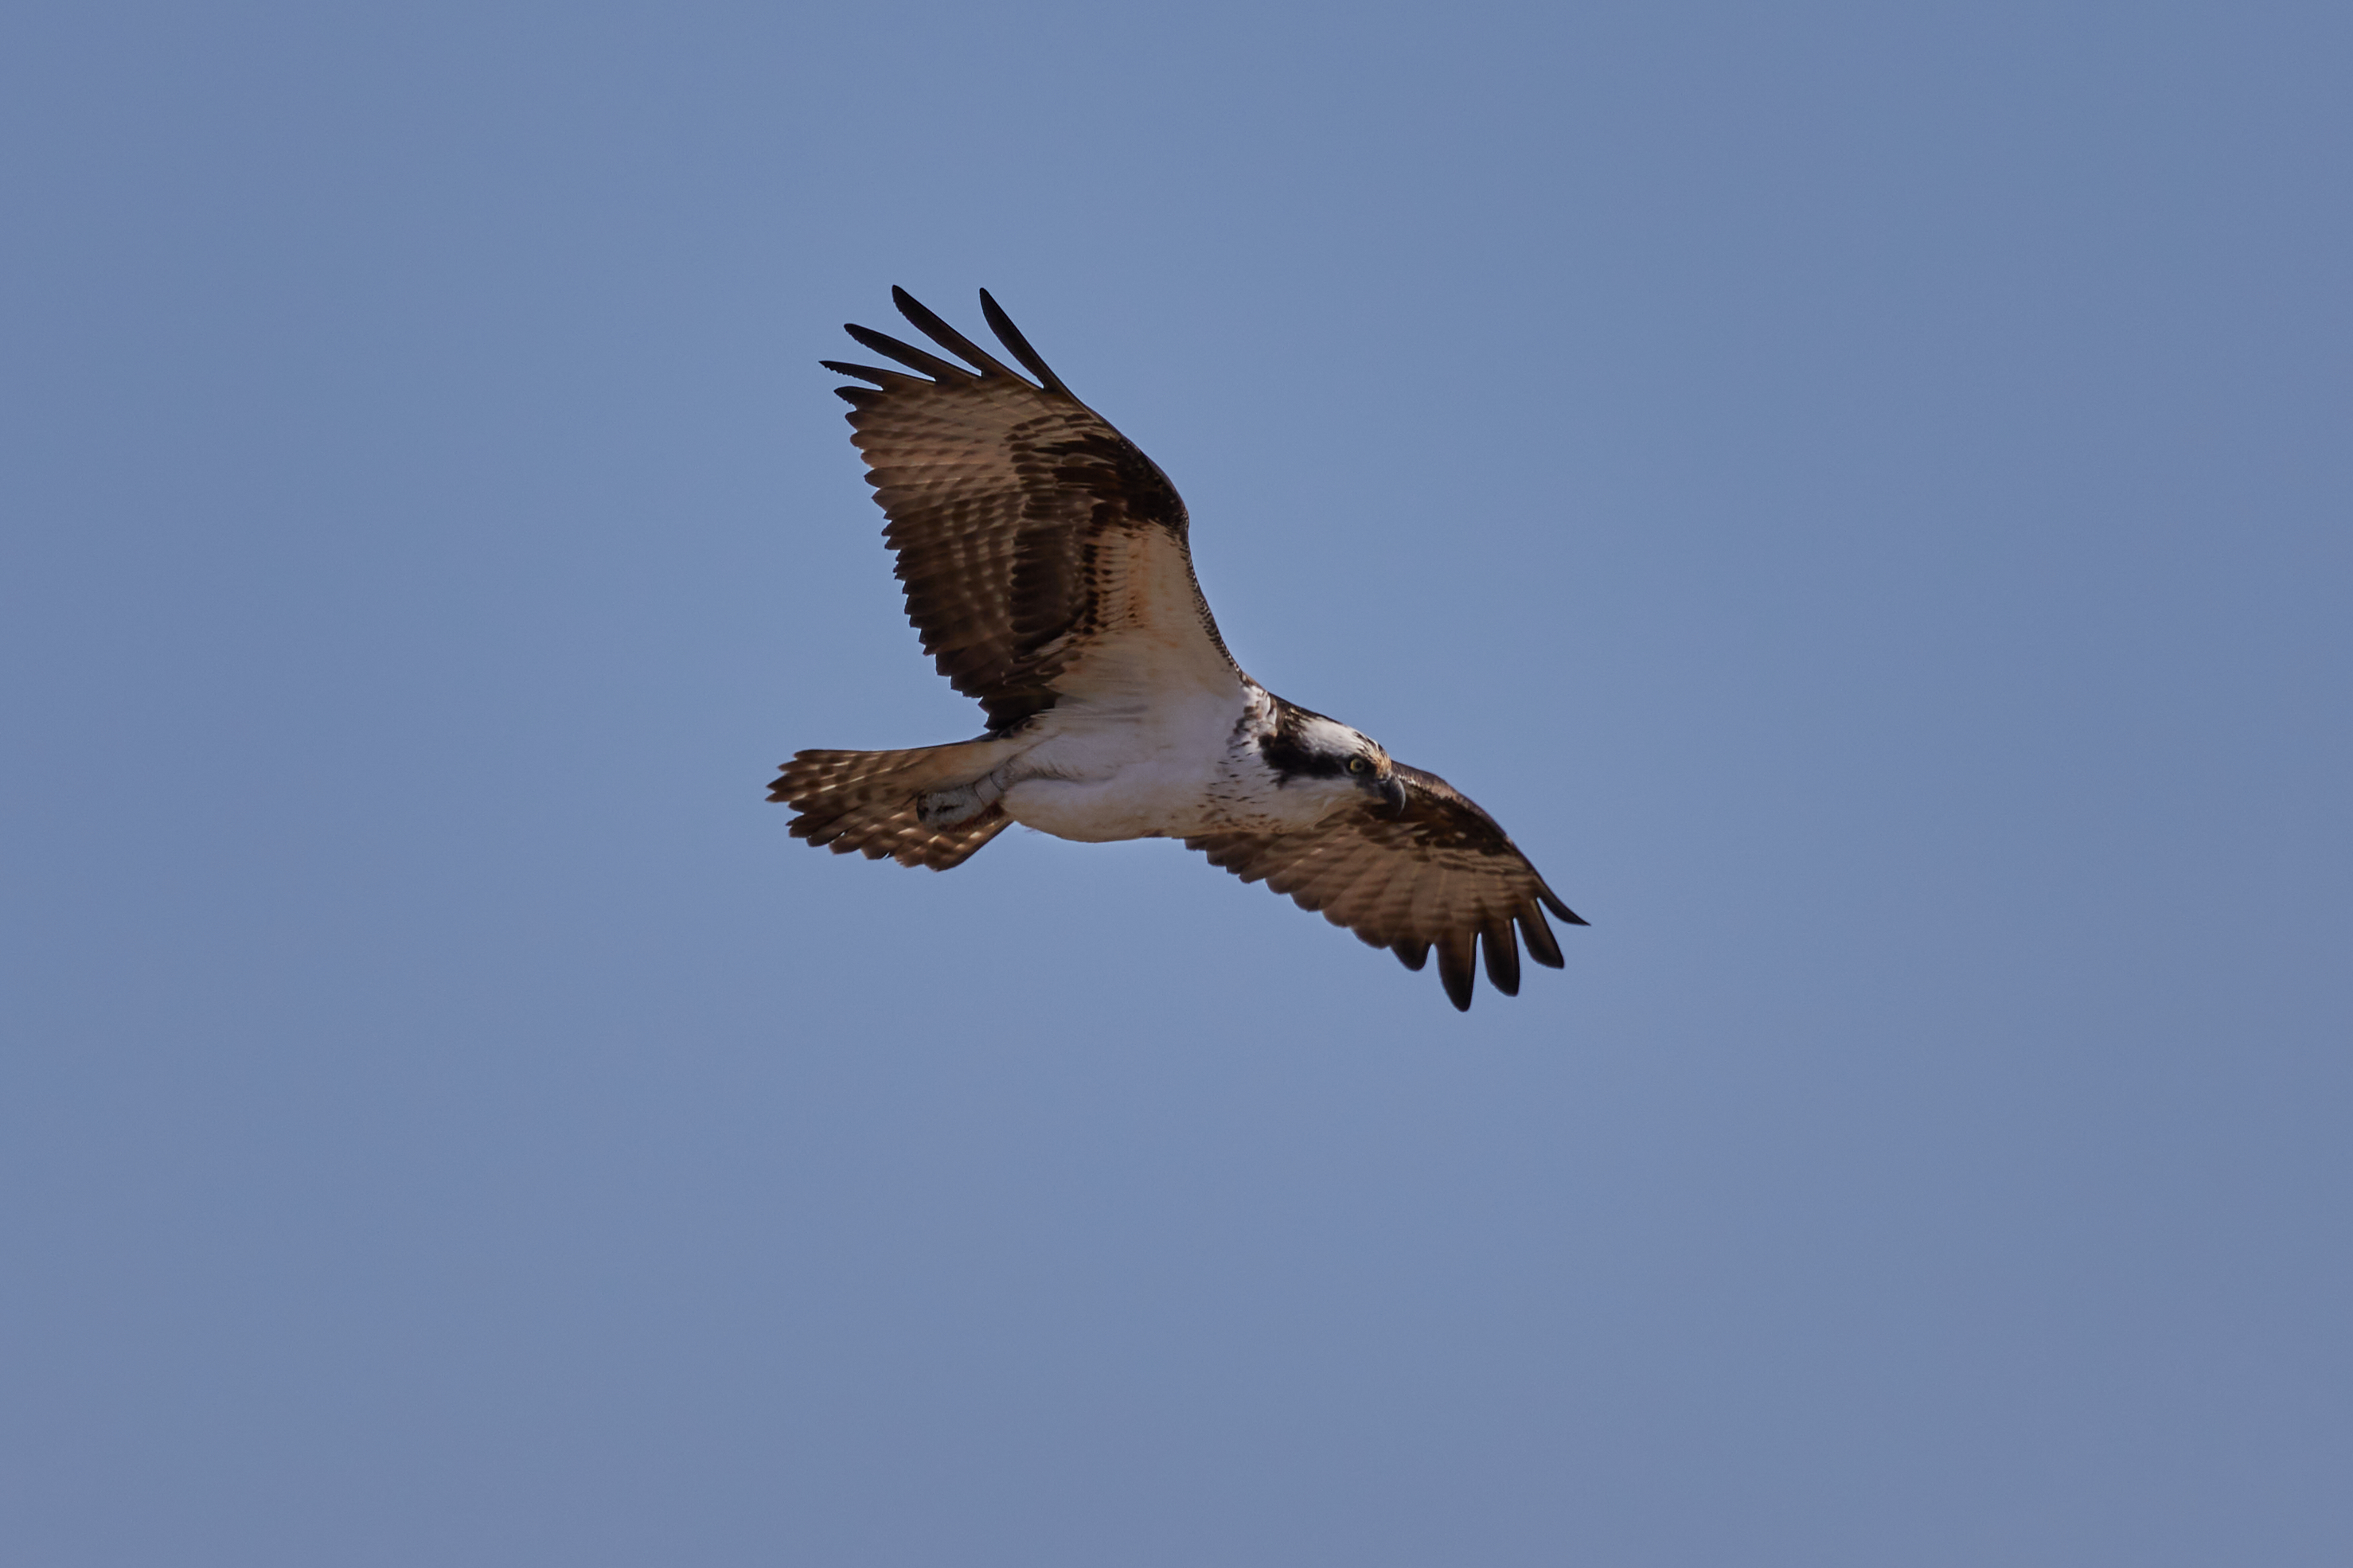 Osprey in flight with wings outstretched.